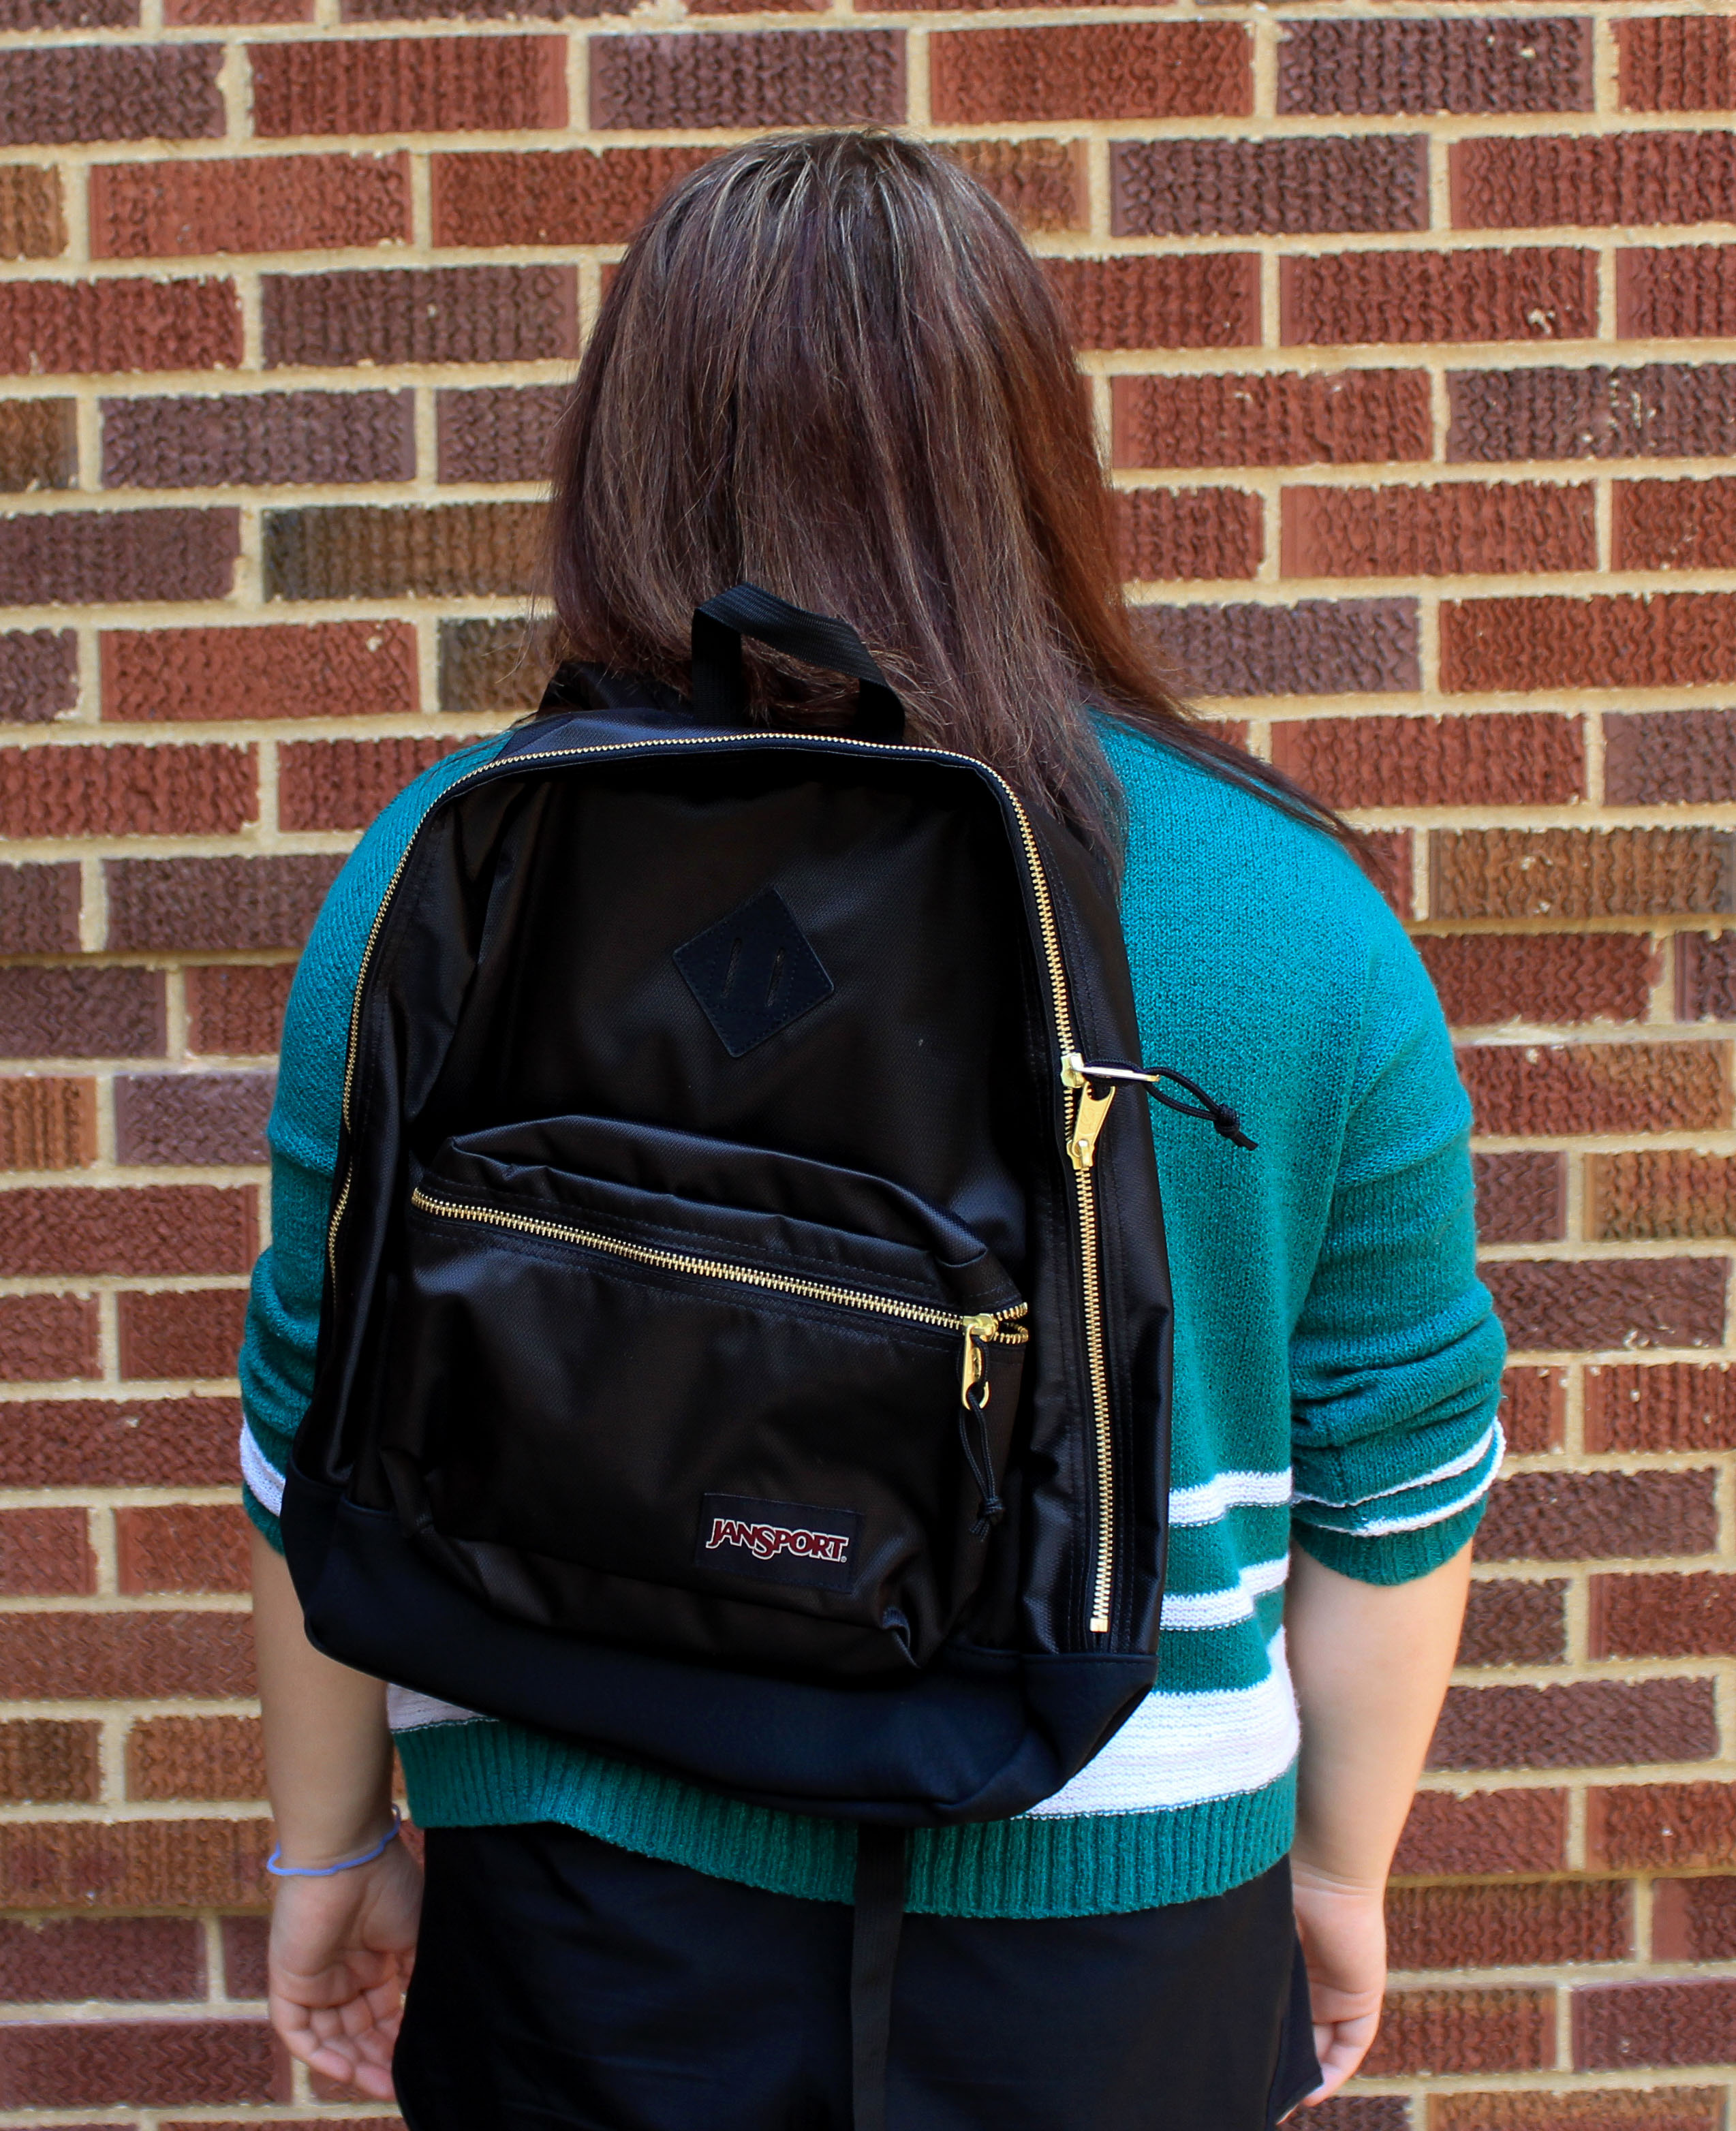 Super FX Black and Gold Backpack